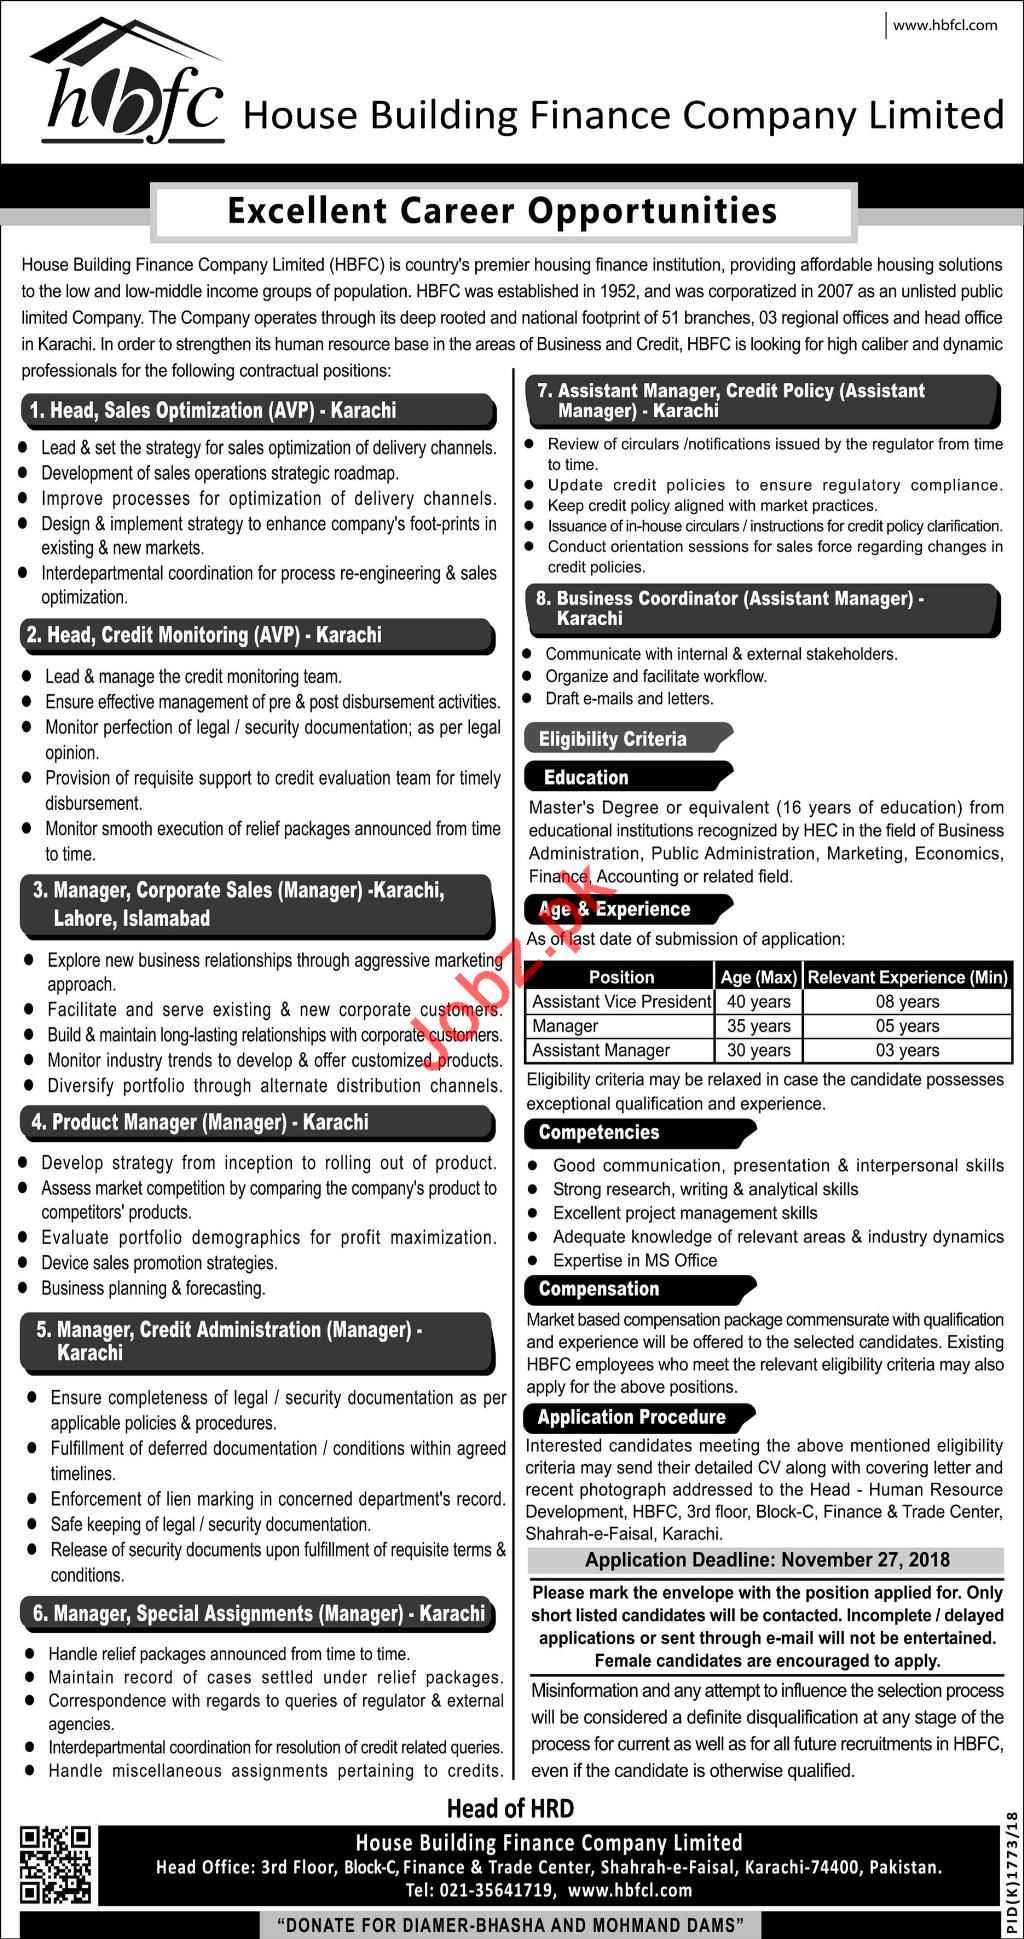 HBFCL House Building Finance Company Limited Jobs 2018